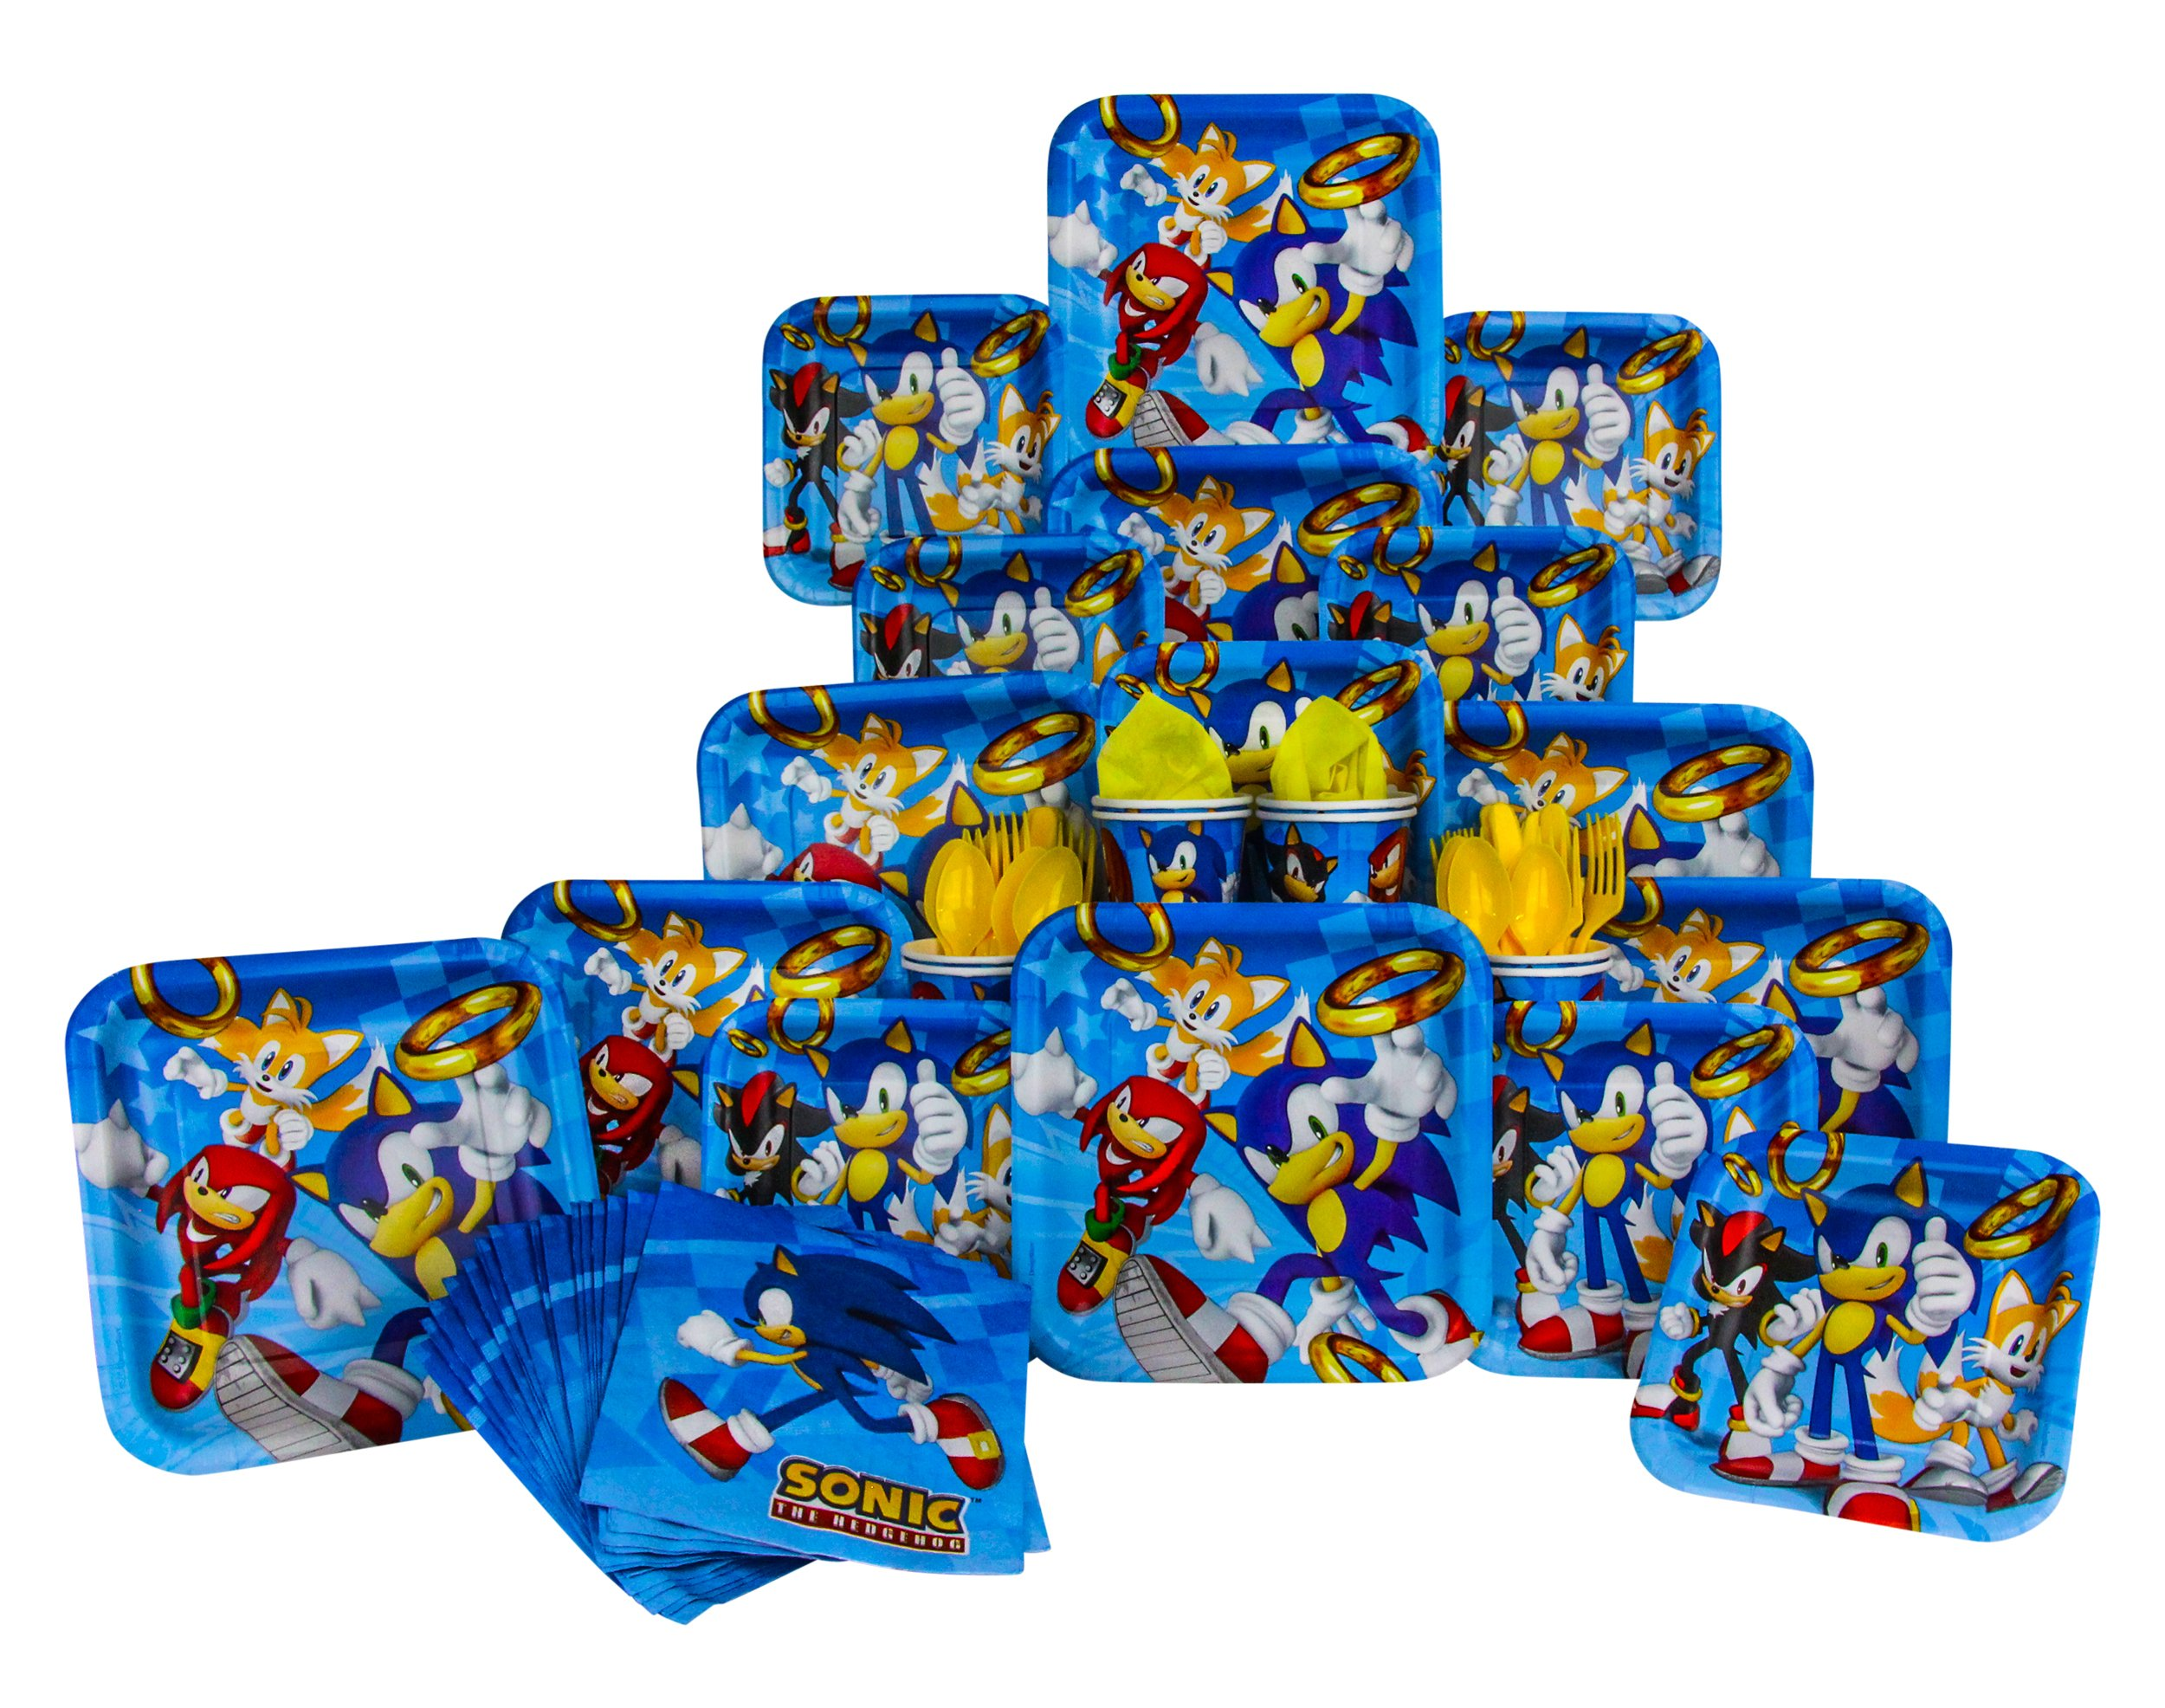 Sonic The Hedgehog Party Pack Seats 8 Napkins Plates Cups Cutlery Sonic The Hedgehog Party Supplies Deluxe Party Pack Buy Online In Dominica B There Products In Dominica